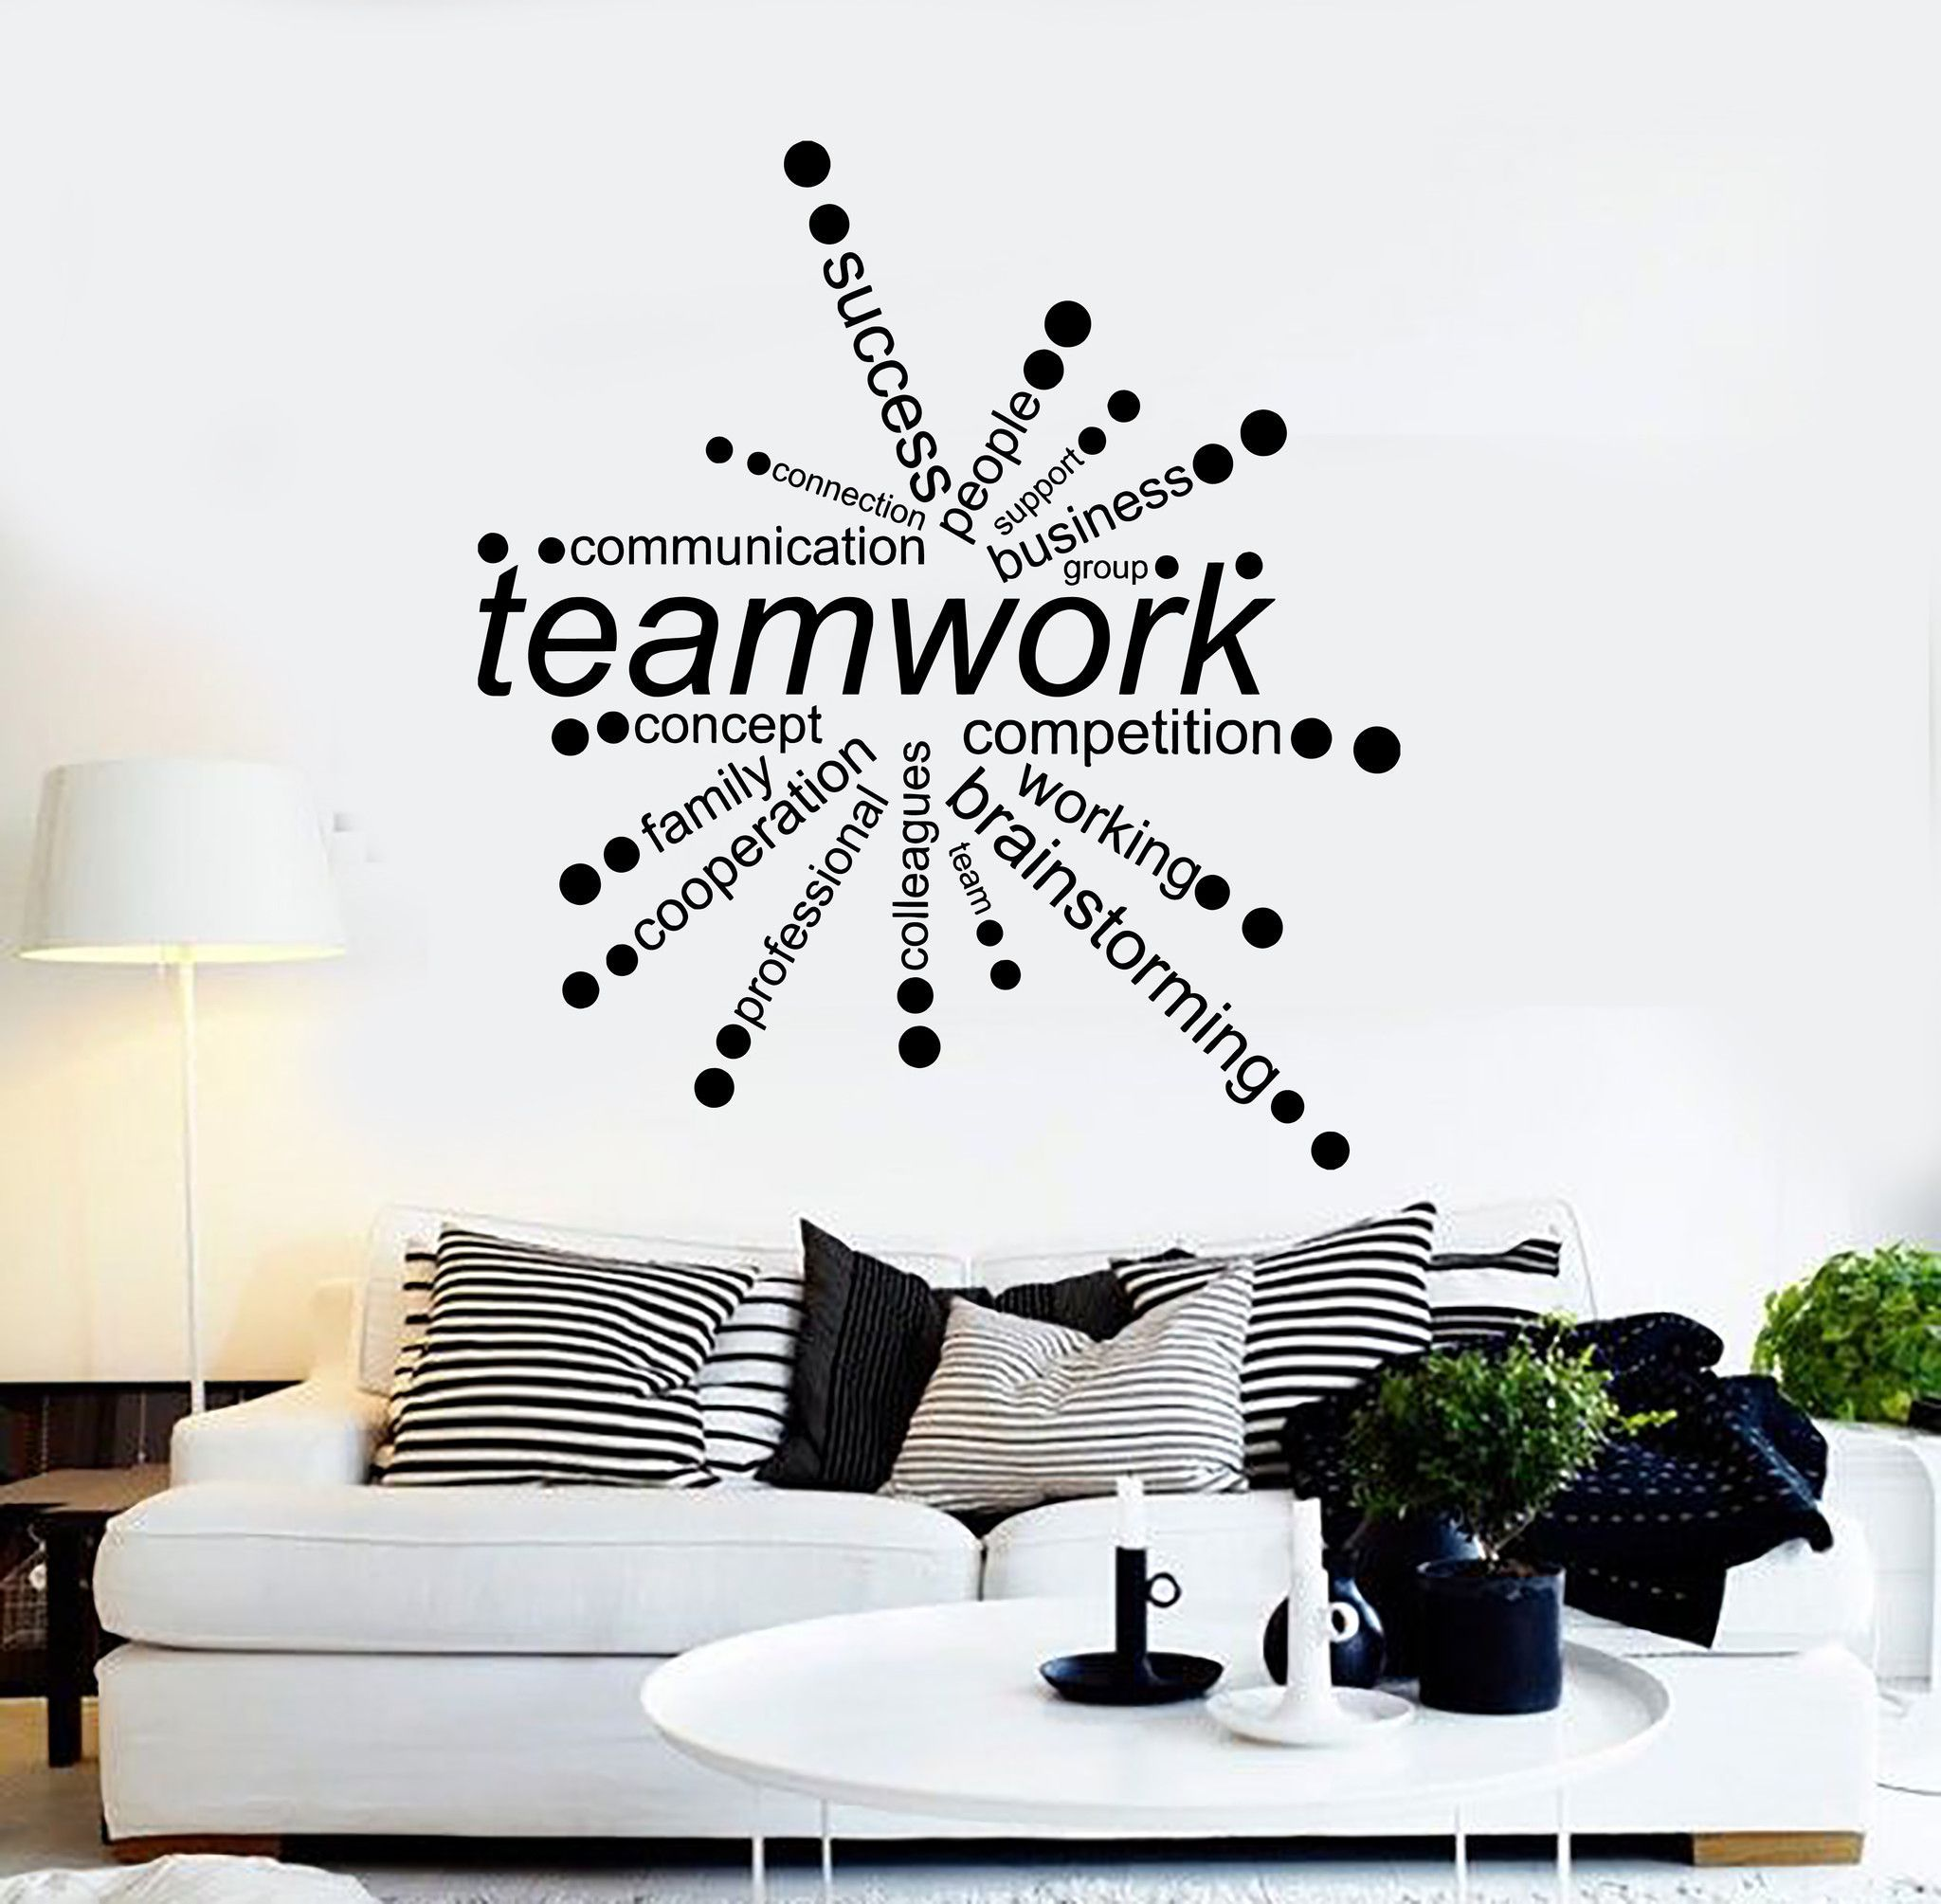 Vinyl wall decal teamwork words office decor business stickers vinyl wall decal teamwork words office decor business stickers unique gift ig4342 amipublicfo Image collections